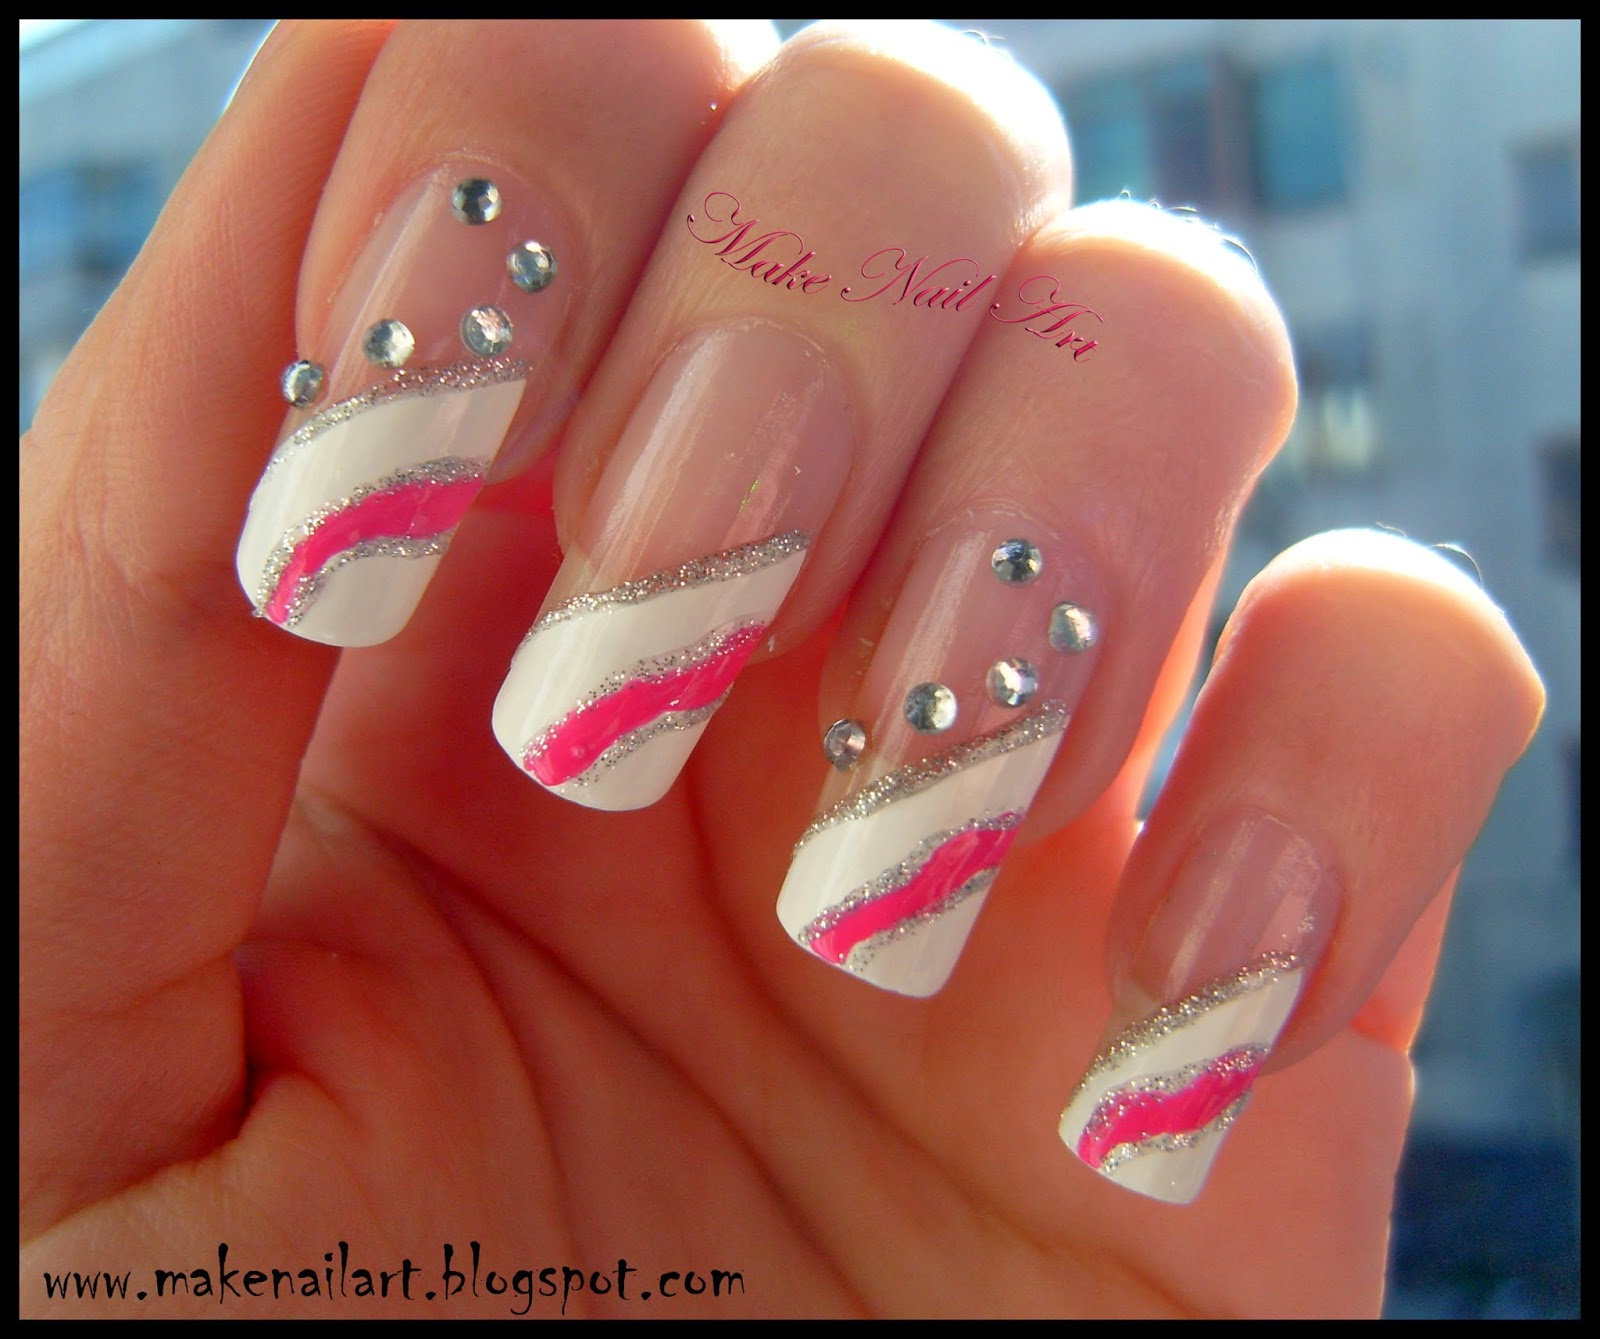 2014 Nail Art Ideas For Prom: Make Nail Art: White And Pink Prom Nails Nail Art Tutorial